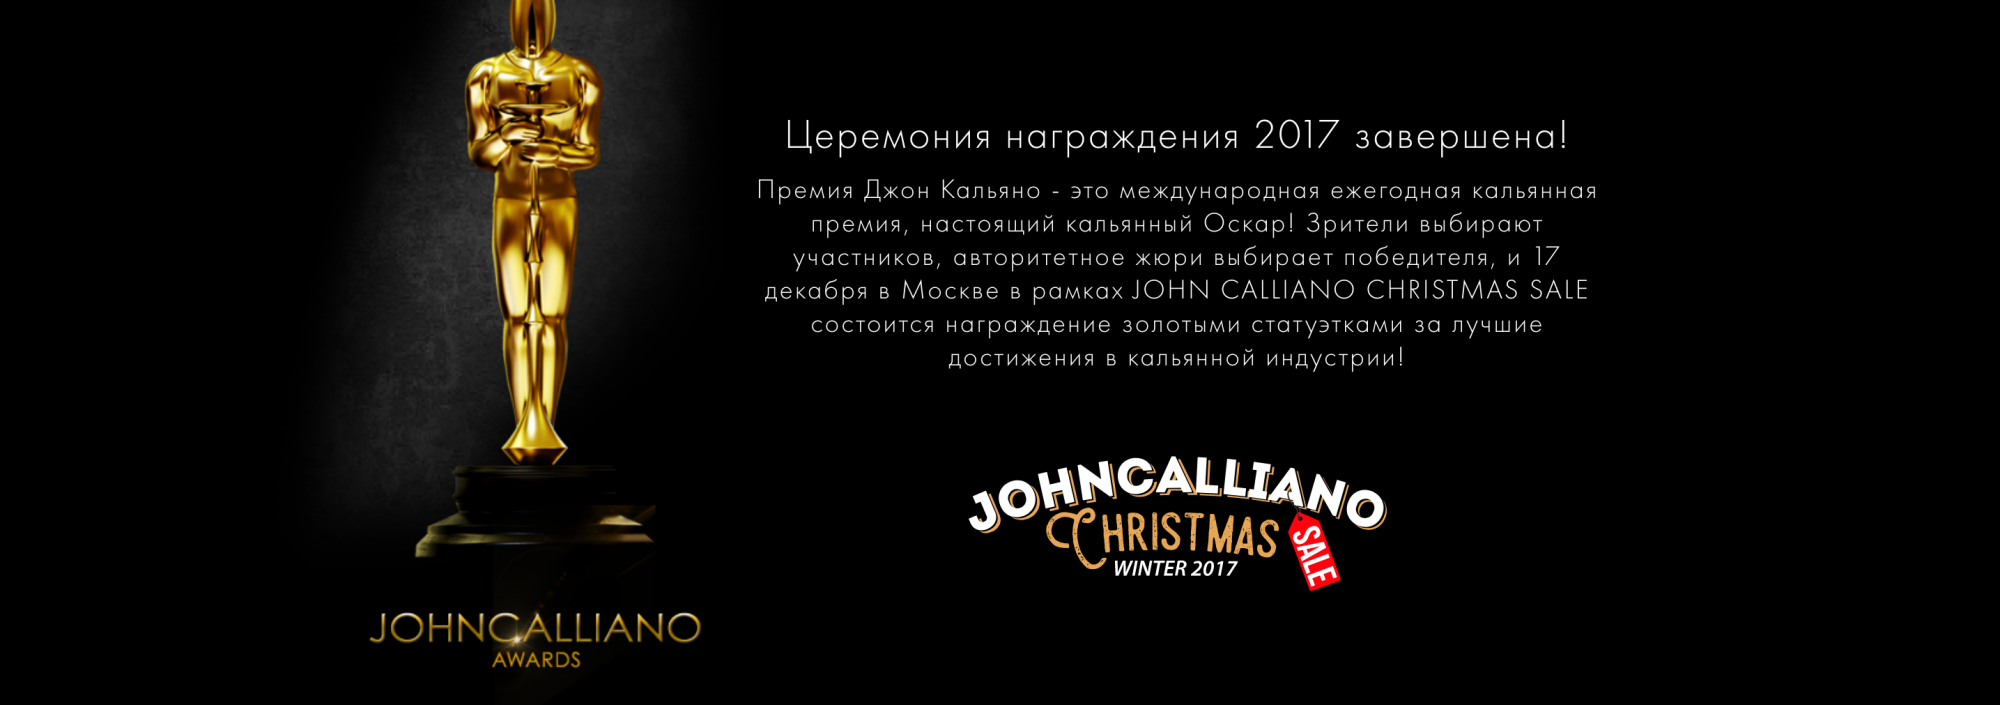 Кальянная Премия JohnCalliano Awards Премия Джон Кальяно